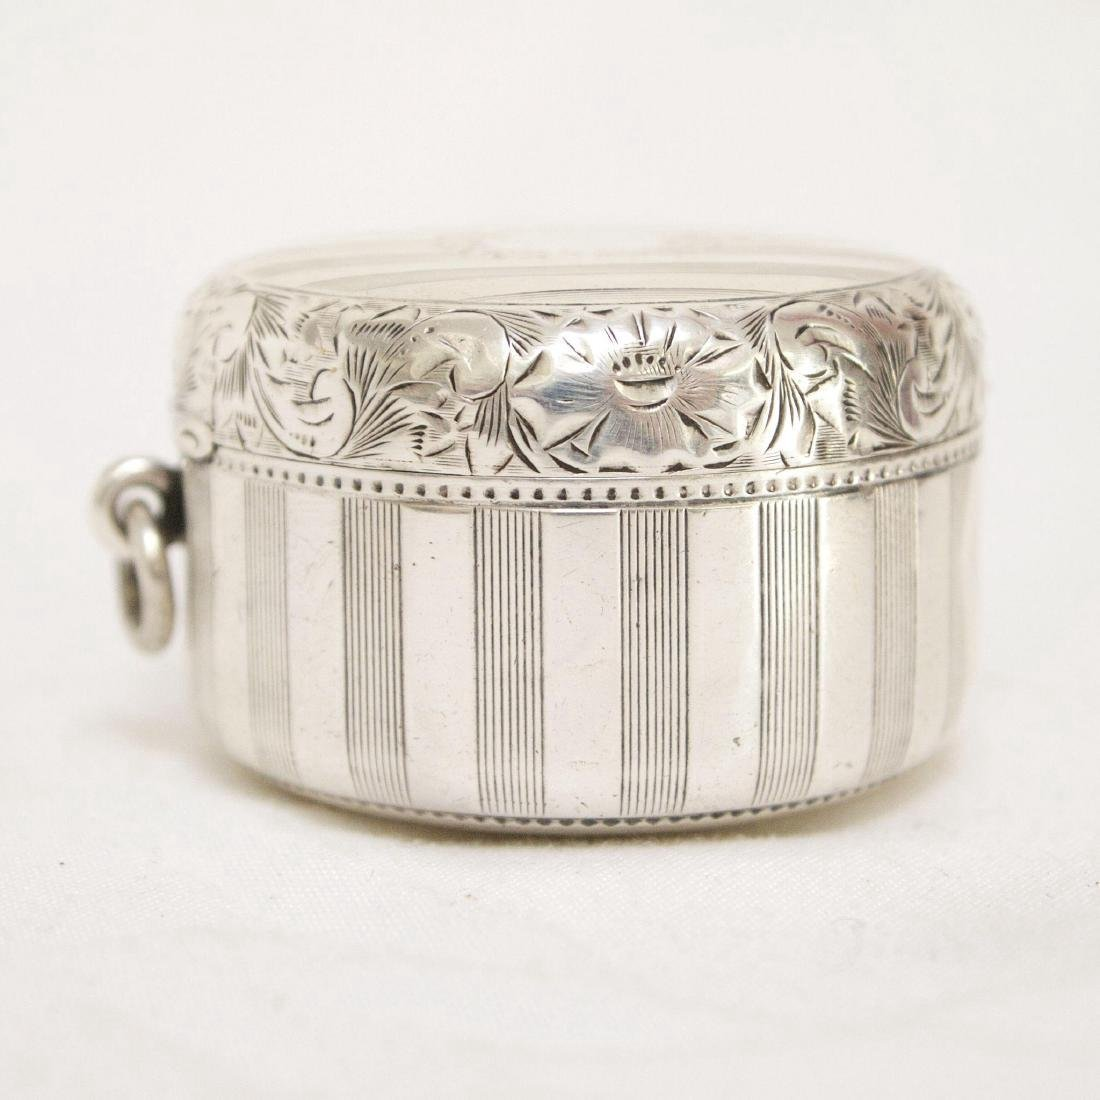 Antique Sterling Silver Rouge Pot with Mirror, 1880 - 2